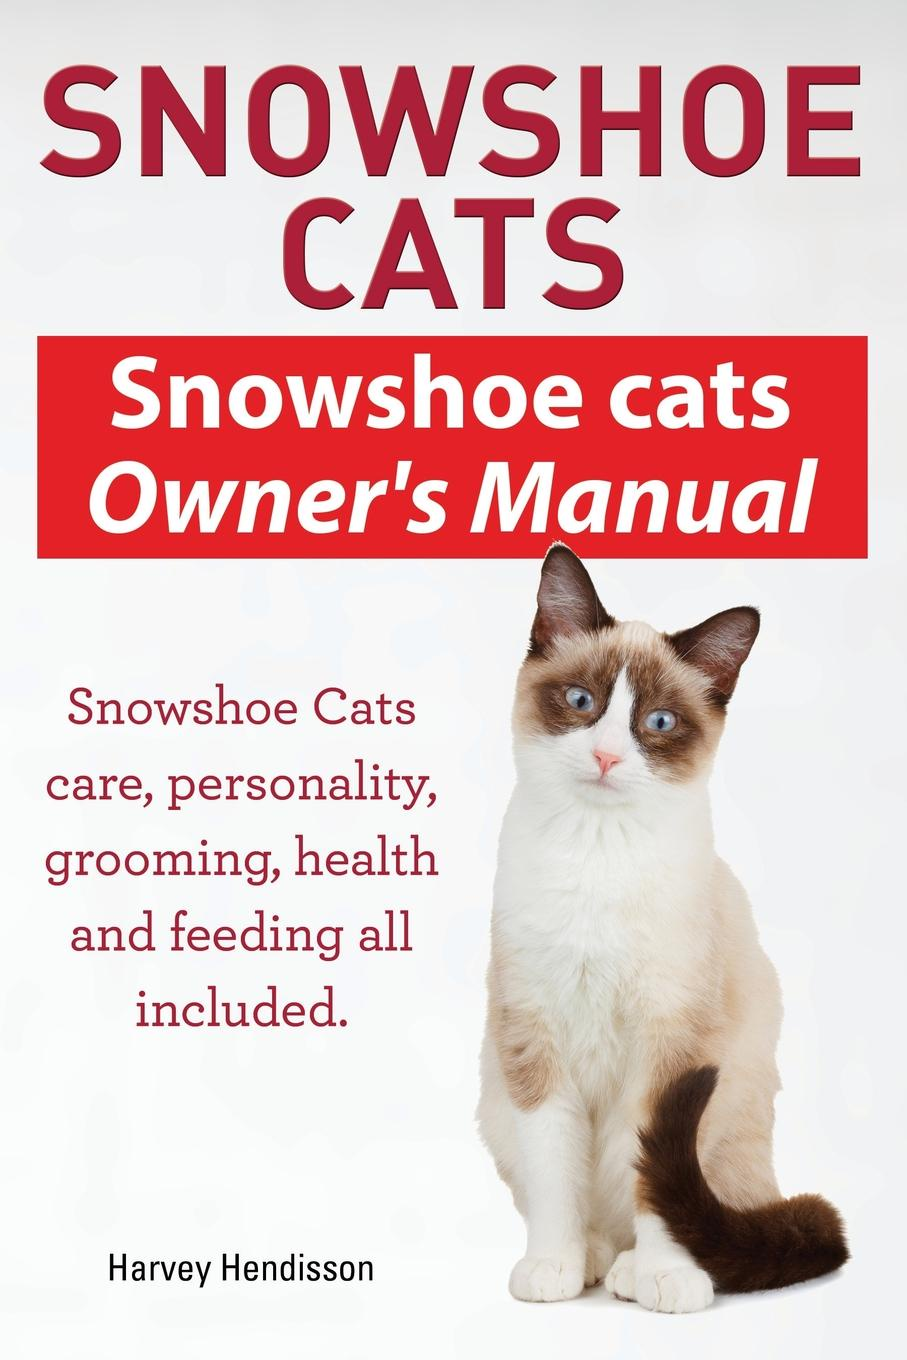 Harvey Hendisson Snowshoe Cats. Snowshoe Cats Owner's Manual. Snowshoe Cats Care, Personality, Grooming, Feeding and Health All Included.